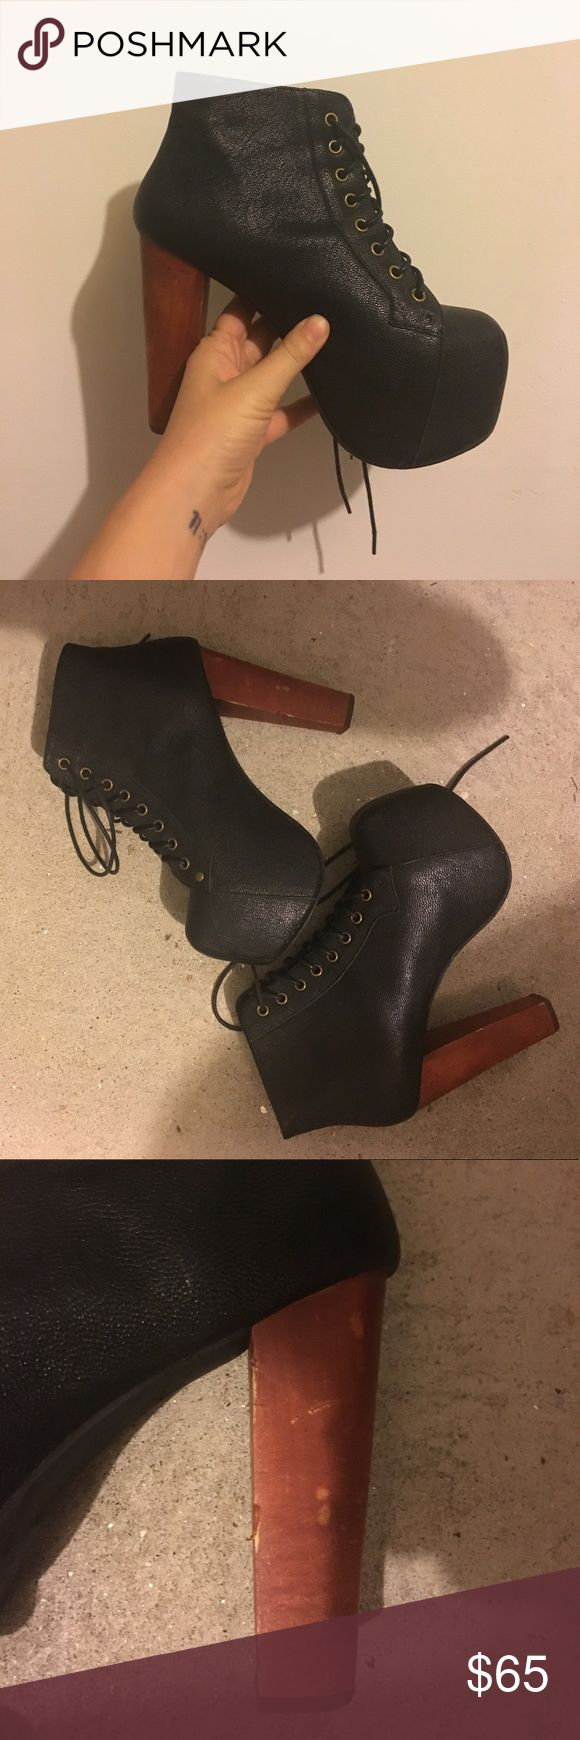 Jeffrey Campbell Litas Black Litas from Jeffrey Campbell. Great stylish boot to make any outfit elevated! Right heel is a bit scuffed, see photos. Also have these listed in red spiked and black skulls! Jeffrey Campbell Shoes Heeled Boots